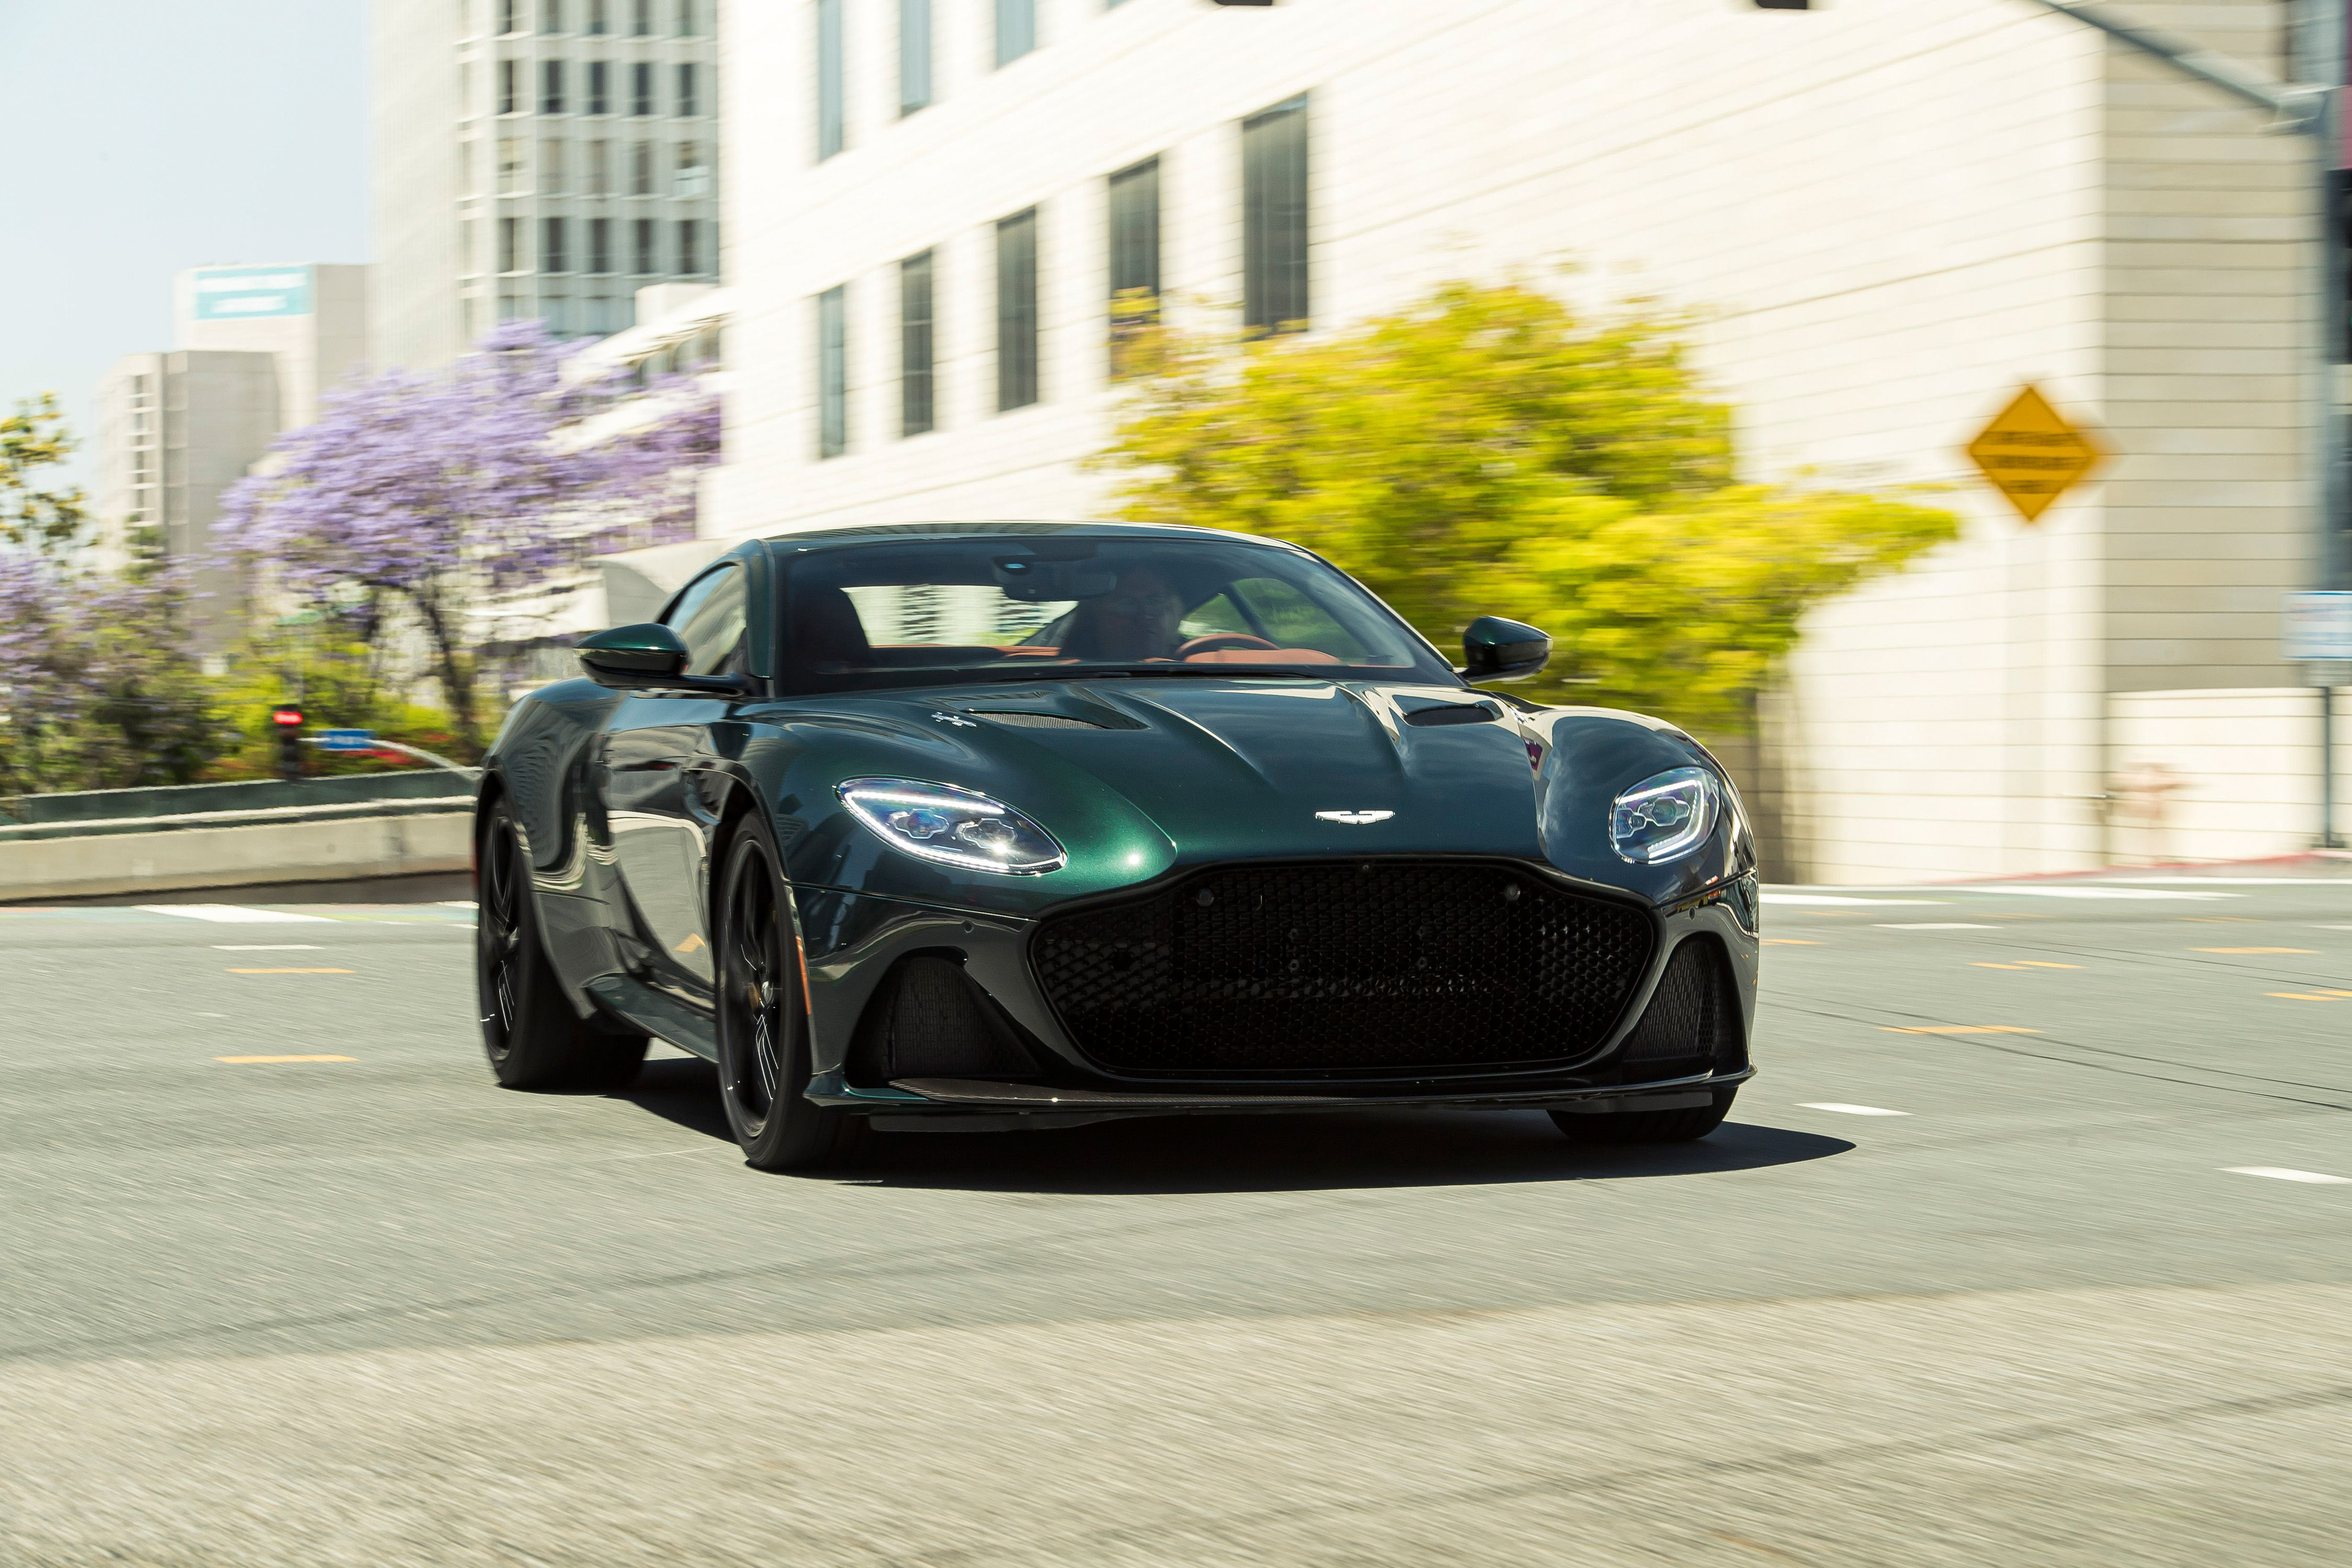 2021 Aston Martin Dbs Superleggera Review Pricing And Specs